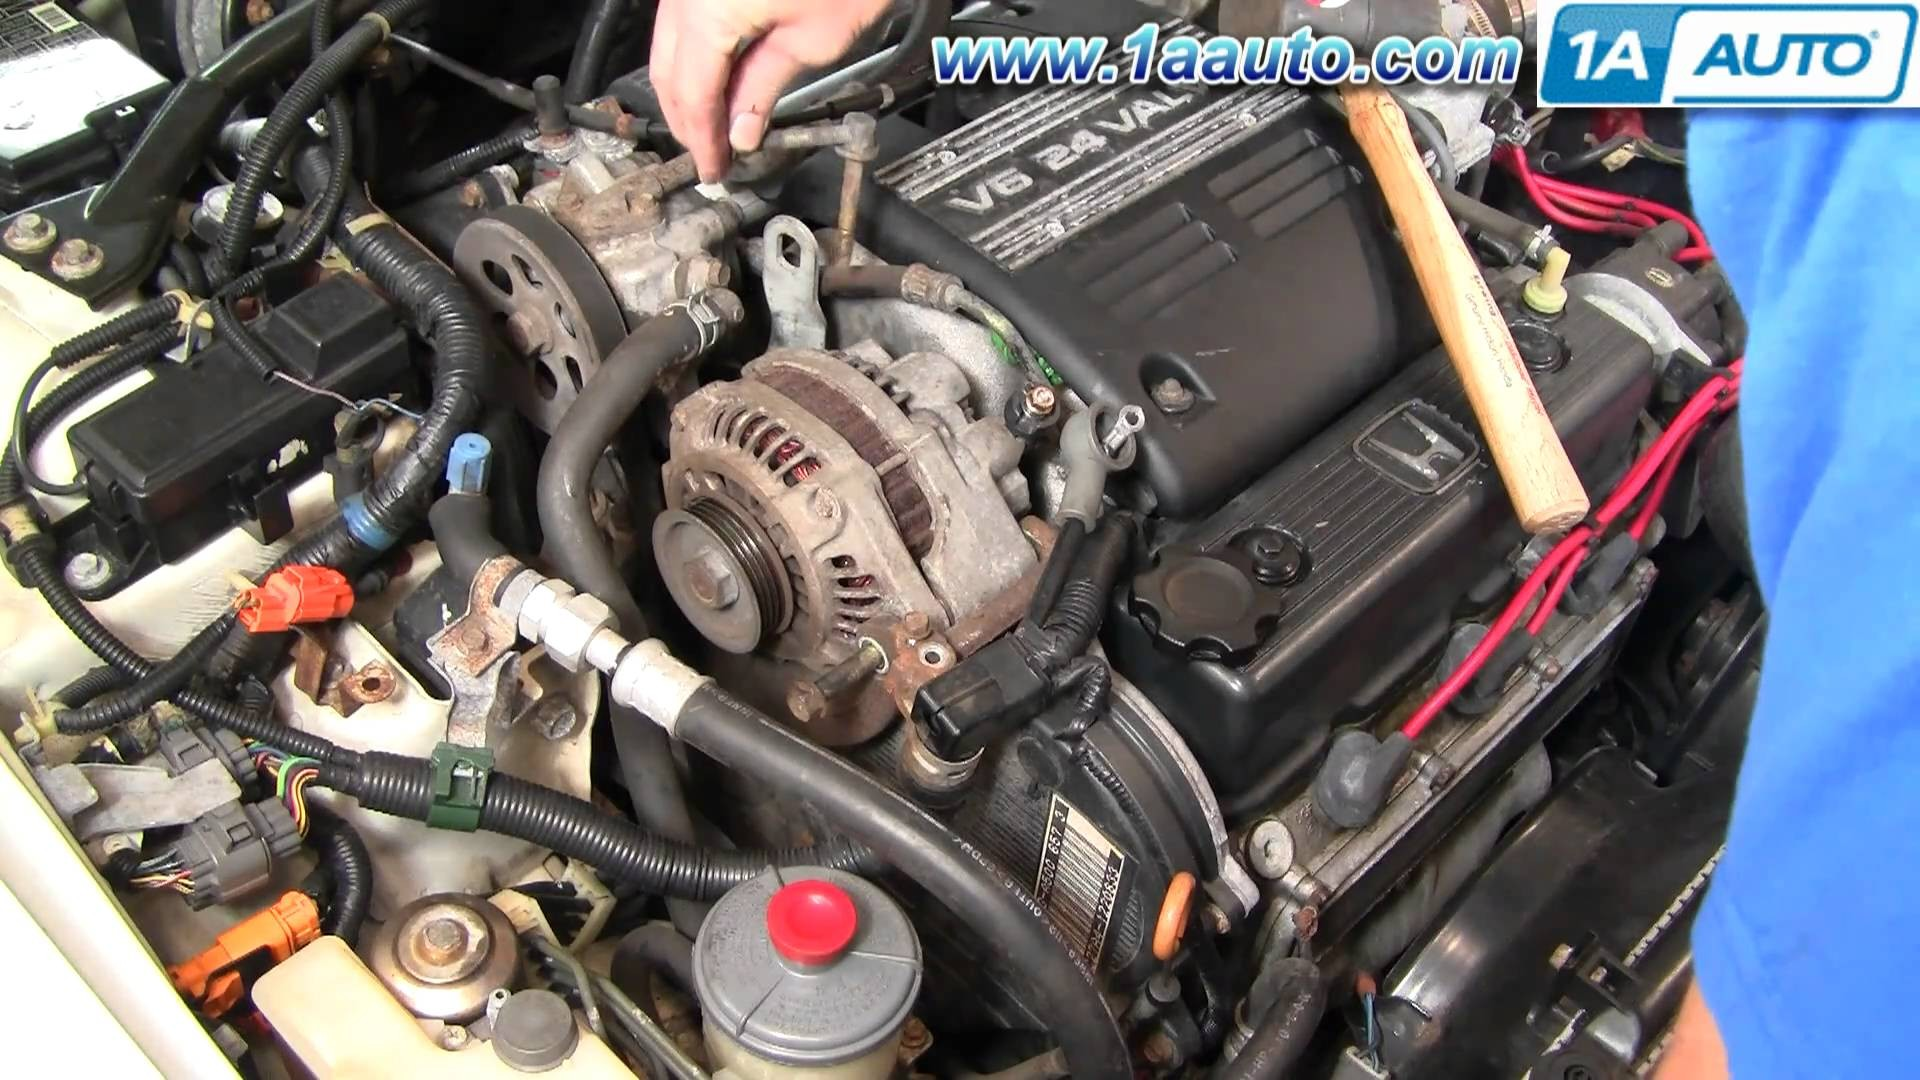 Wiring Diagram On 97 Honda Accord Engine Cooling Fan Wiring Diagram